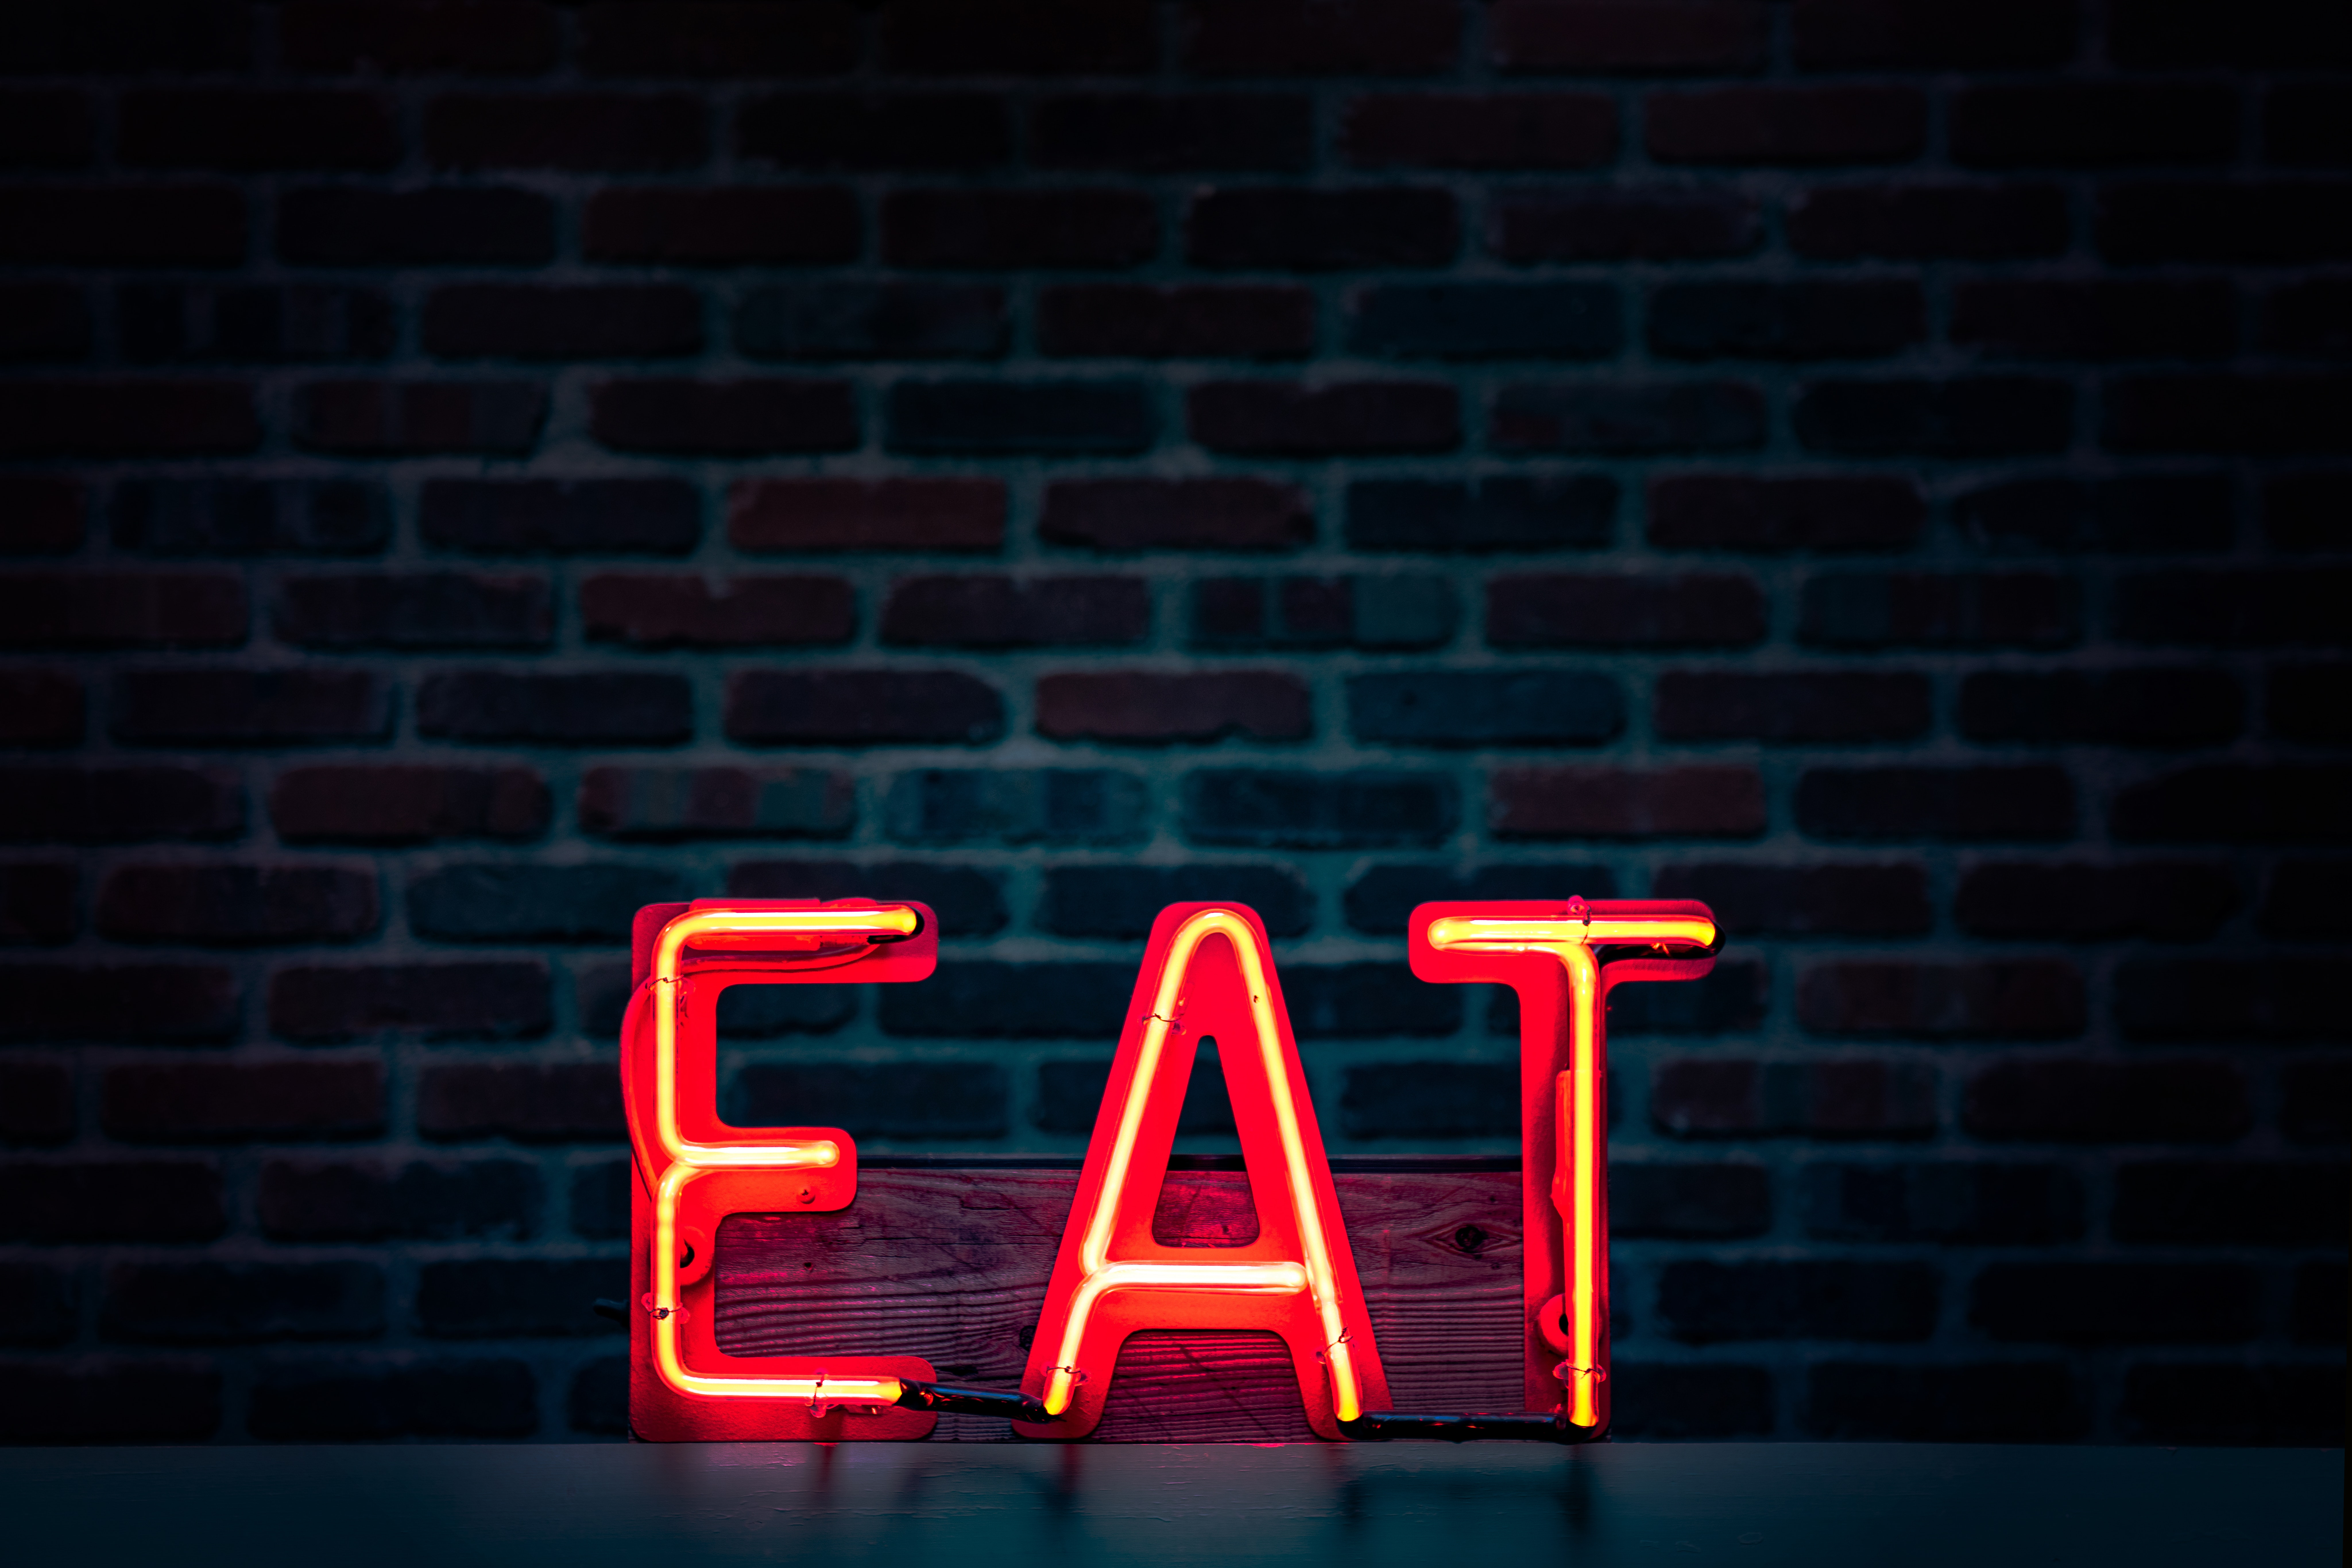 neon sign against a brick wall which says EAT. Neon sign has a red background and text is in yellow